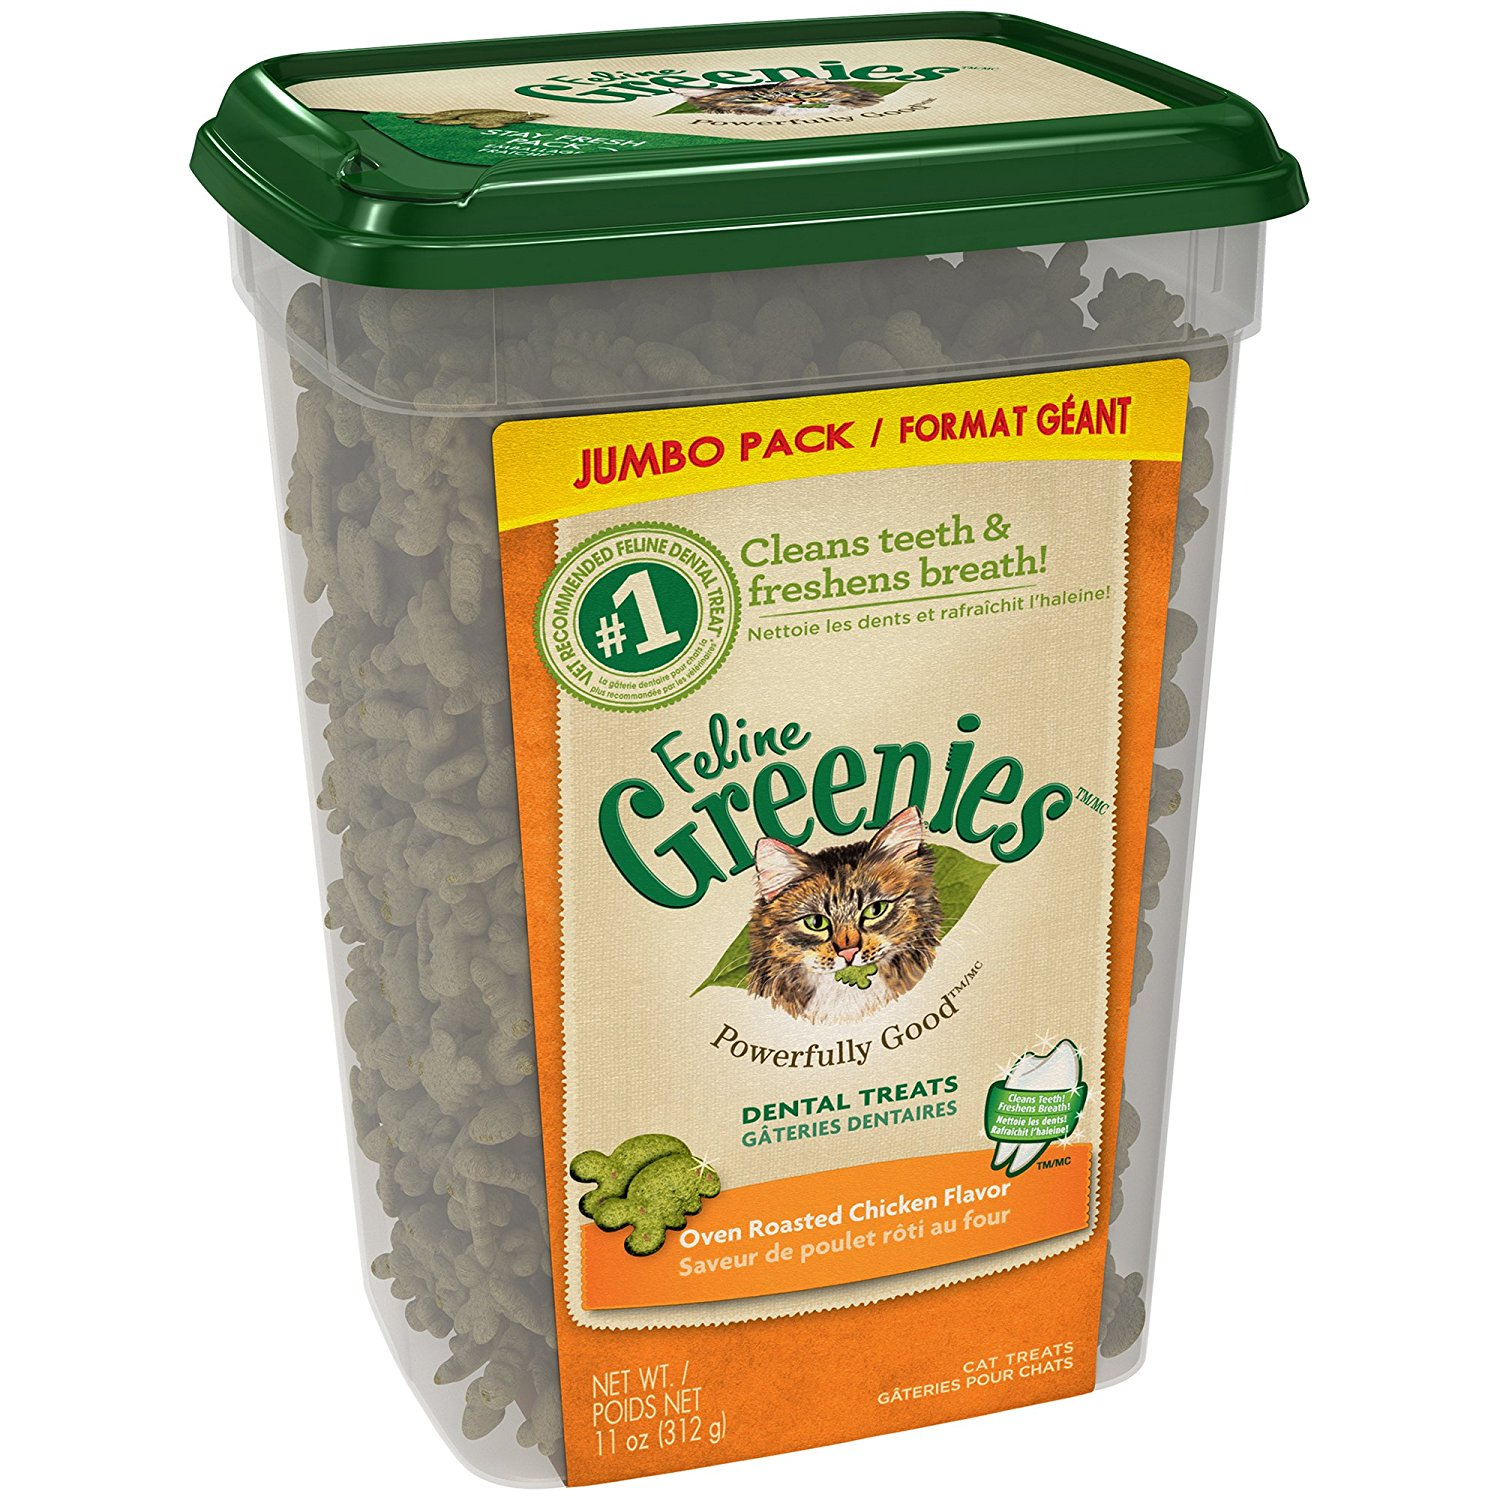 Greenies Dental Dog Treats Wholesale